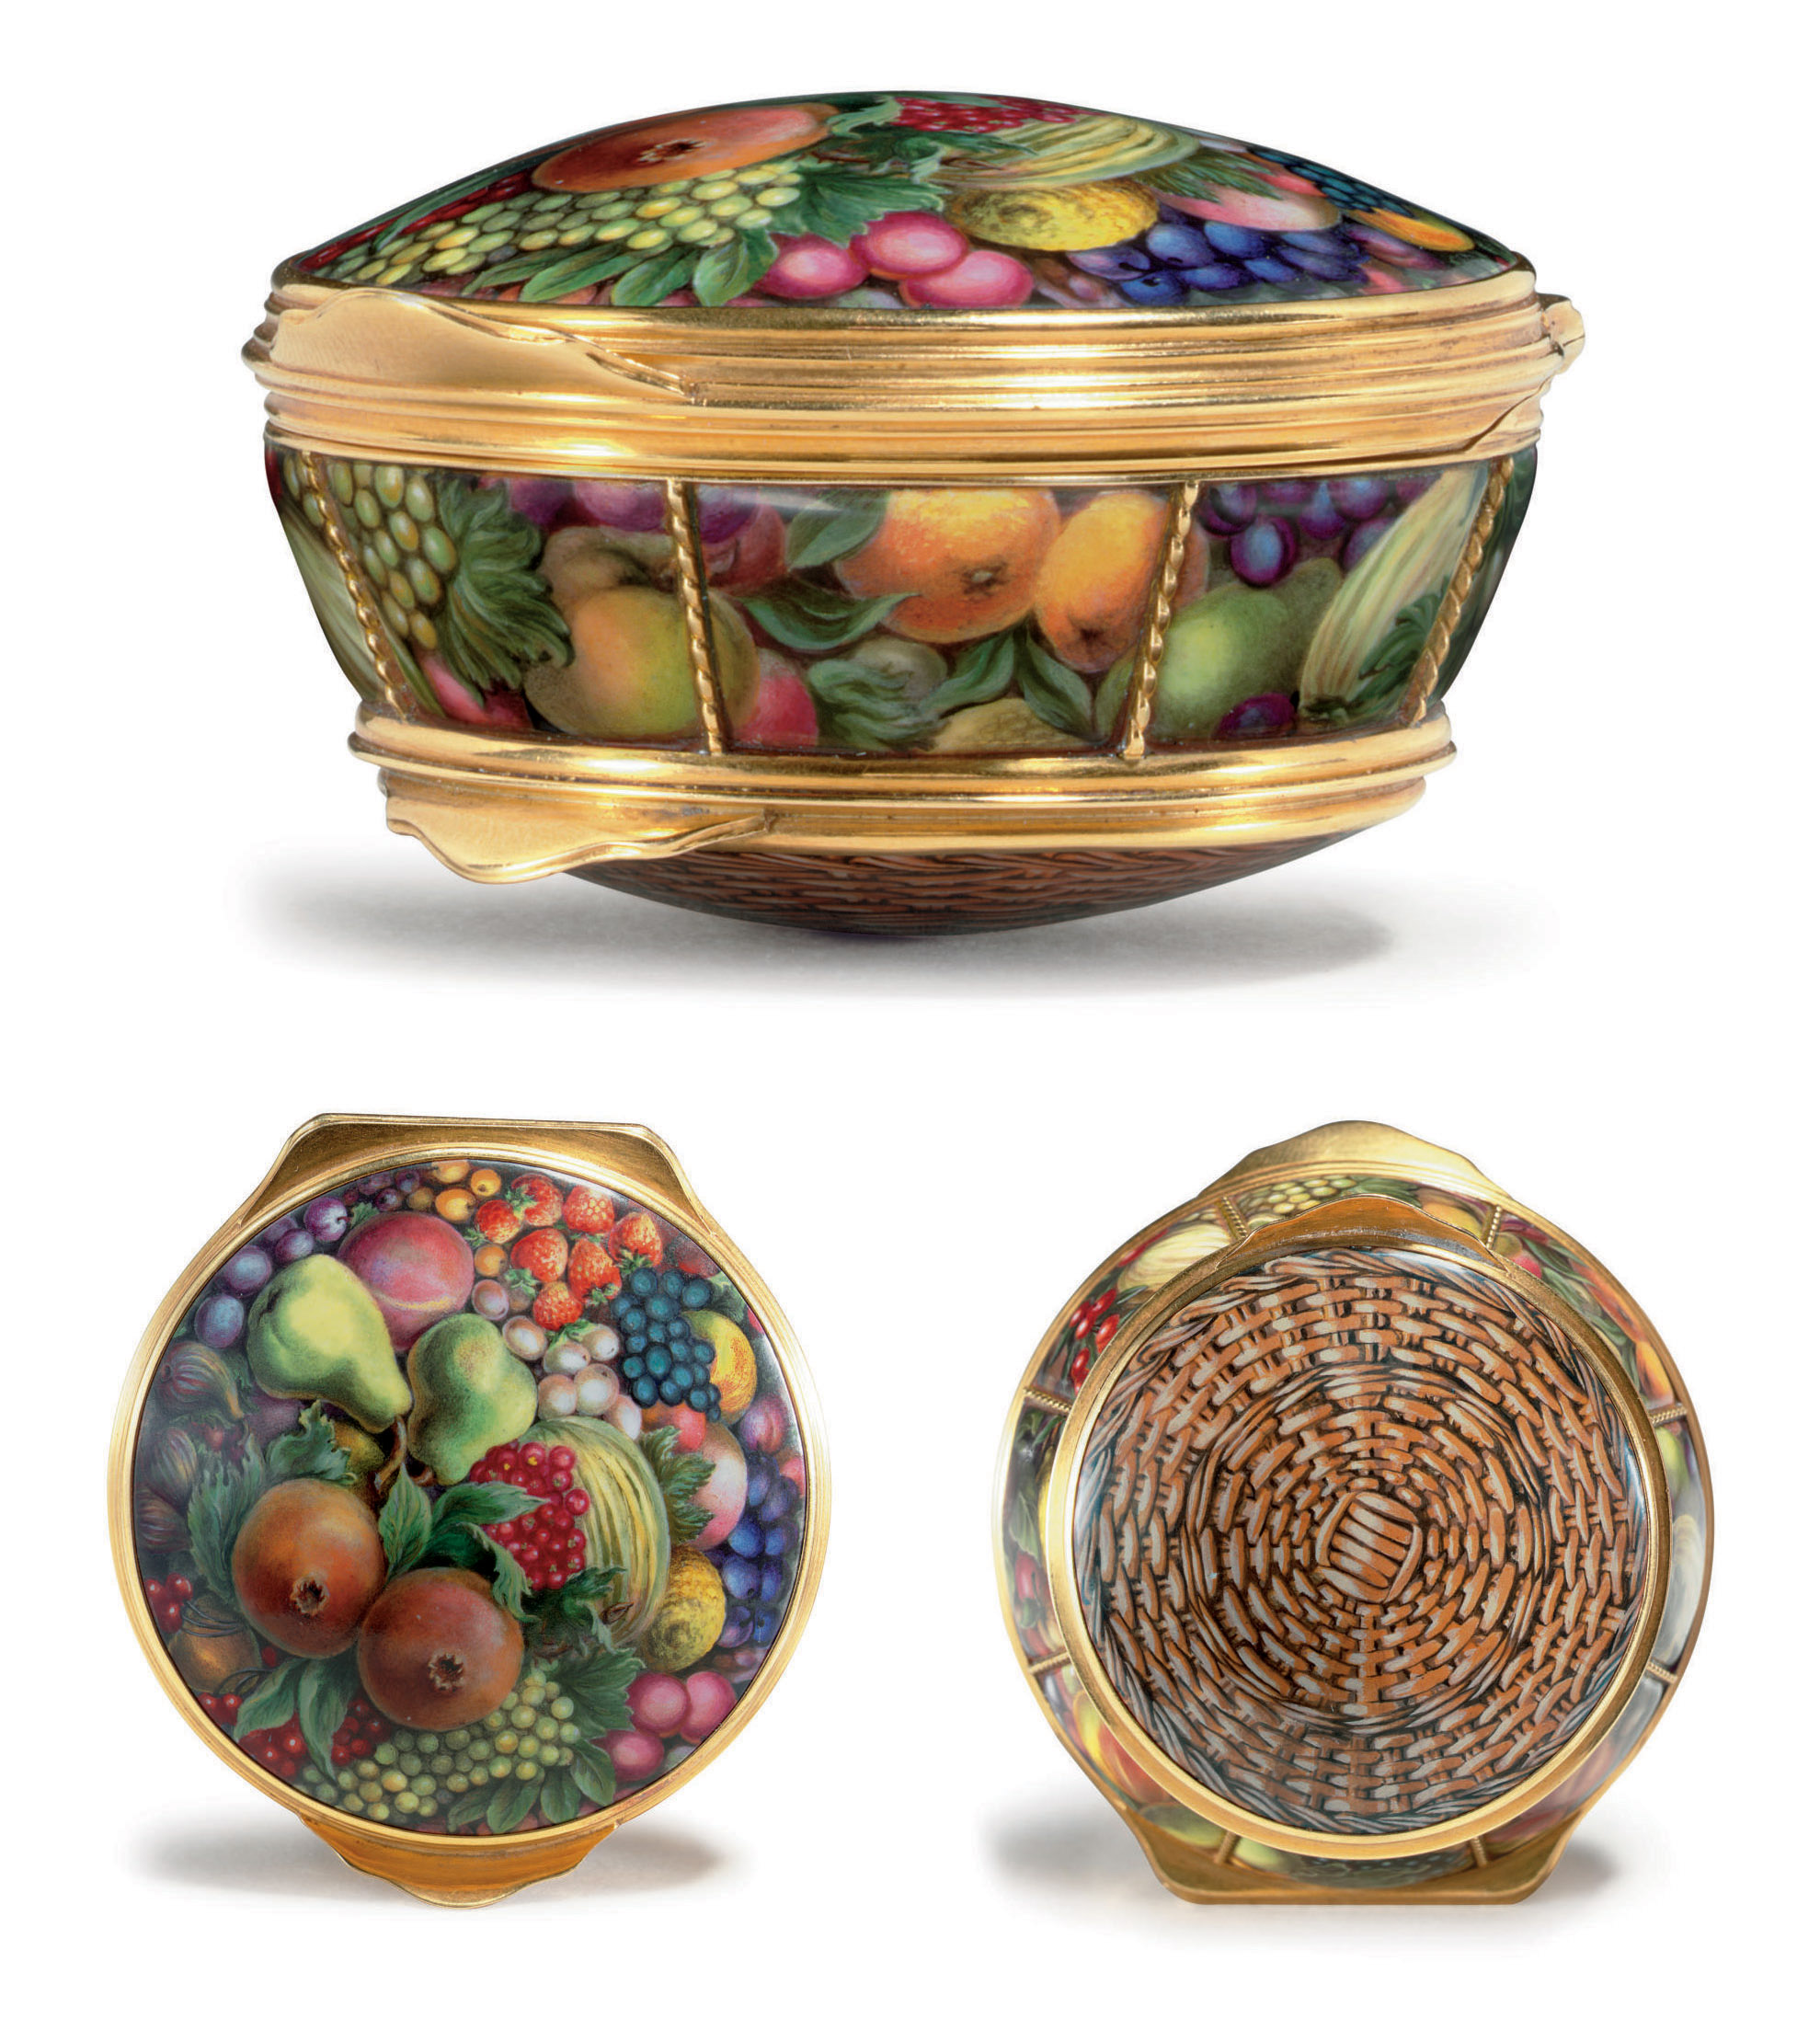 A Gold and Enamel Box Formed a